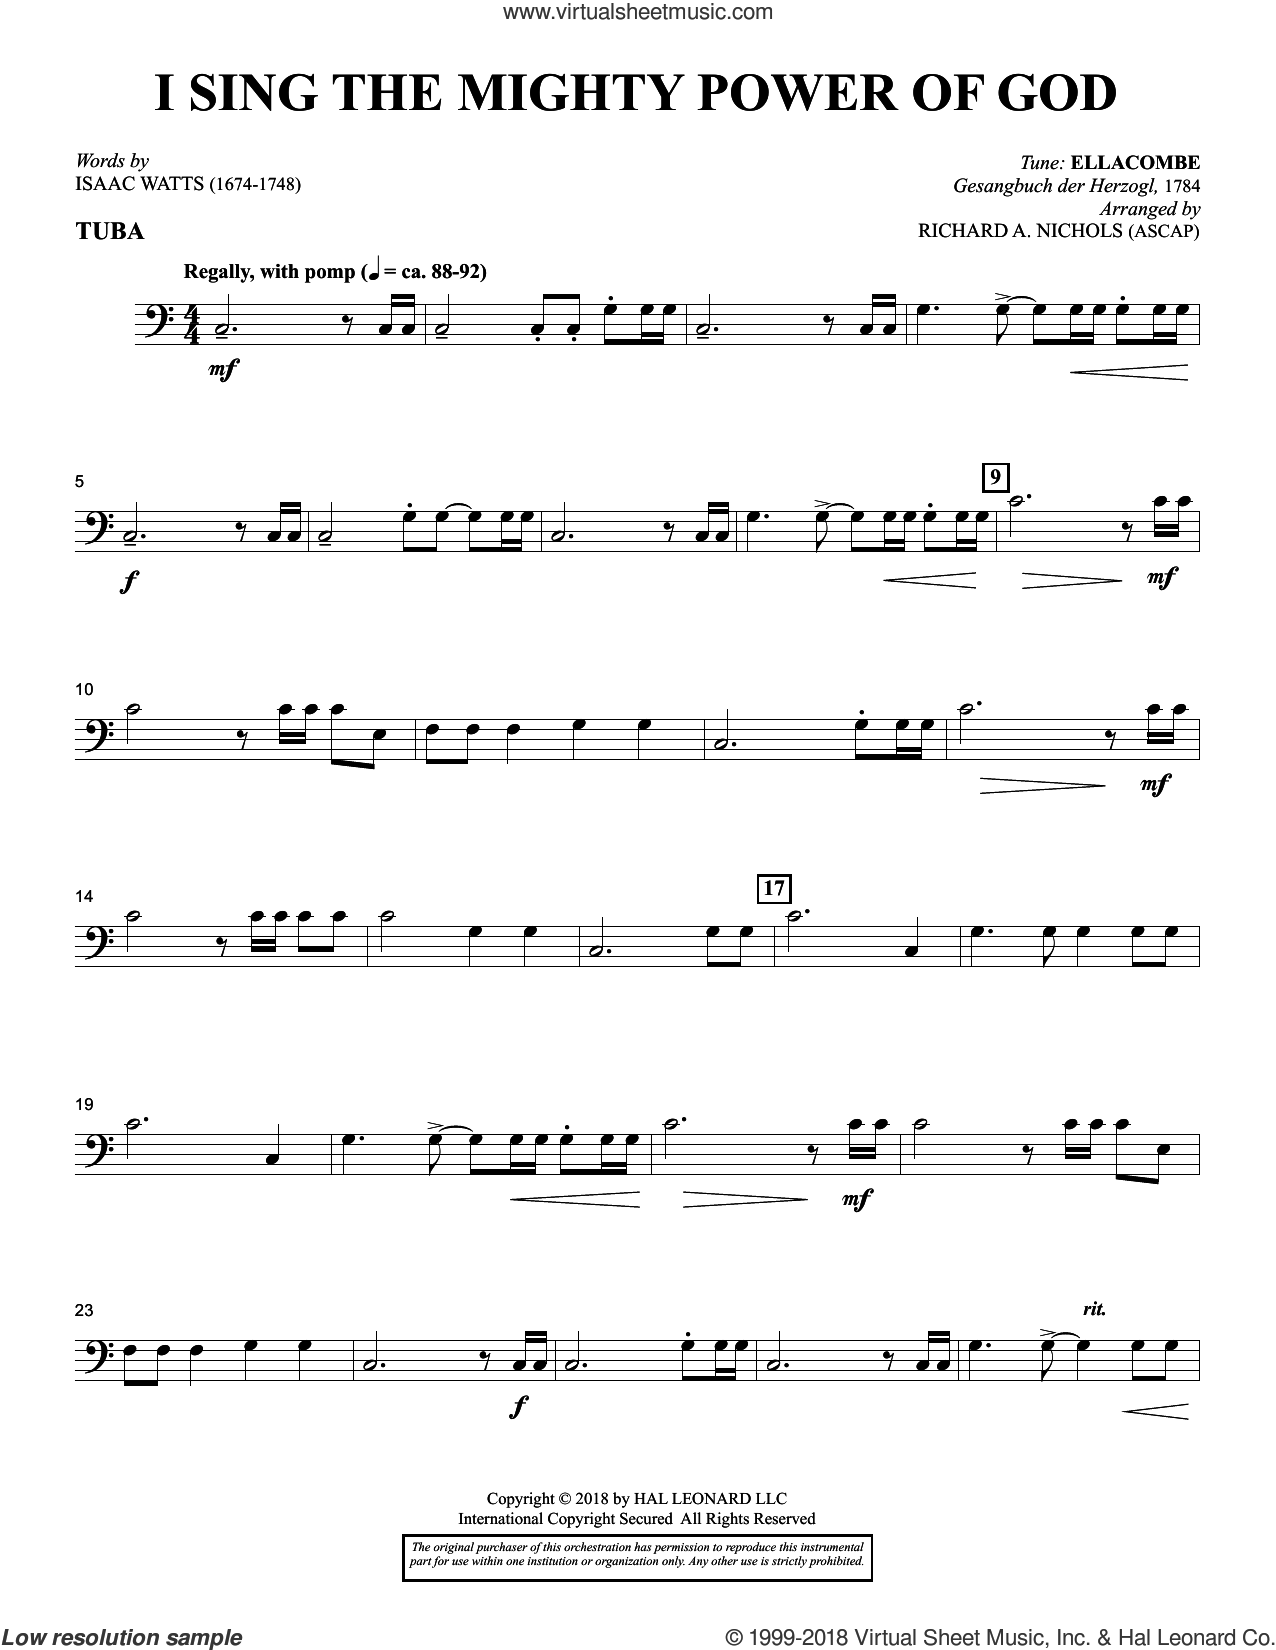 I Sing the Mighty Power of God (arr. Richard Nichols) sheet music for orchestra/band (tuba) by Isaac Watts and Richard A. Nichols, intermediate skill level